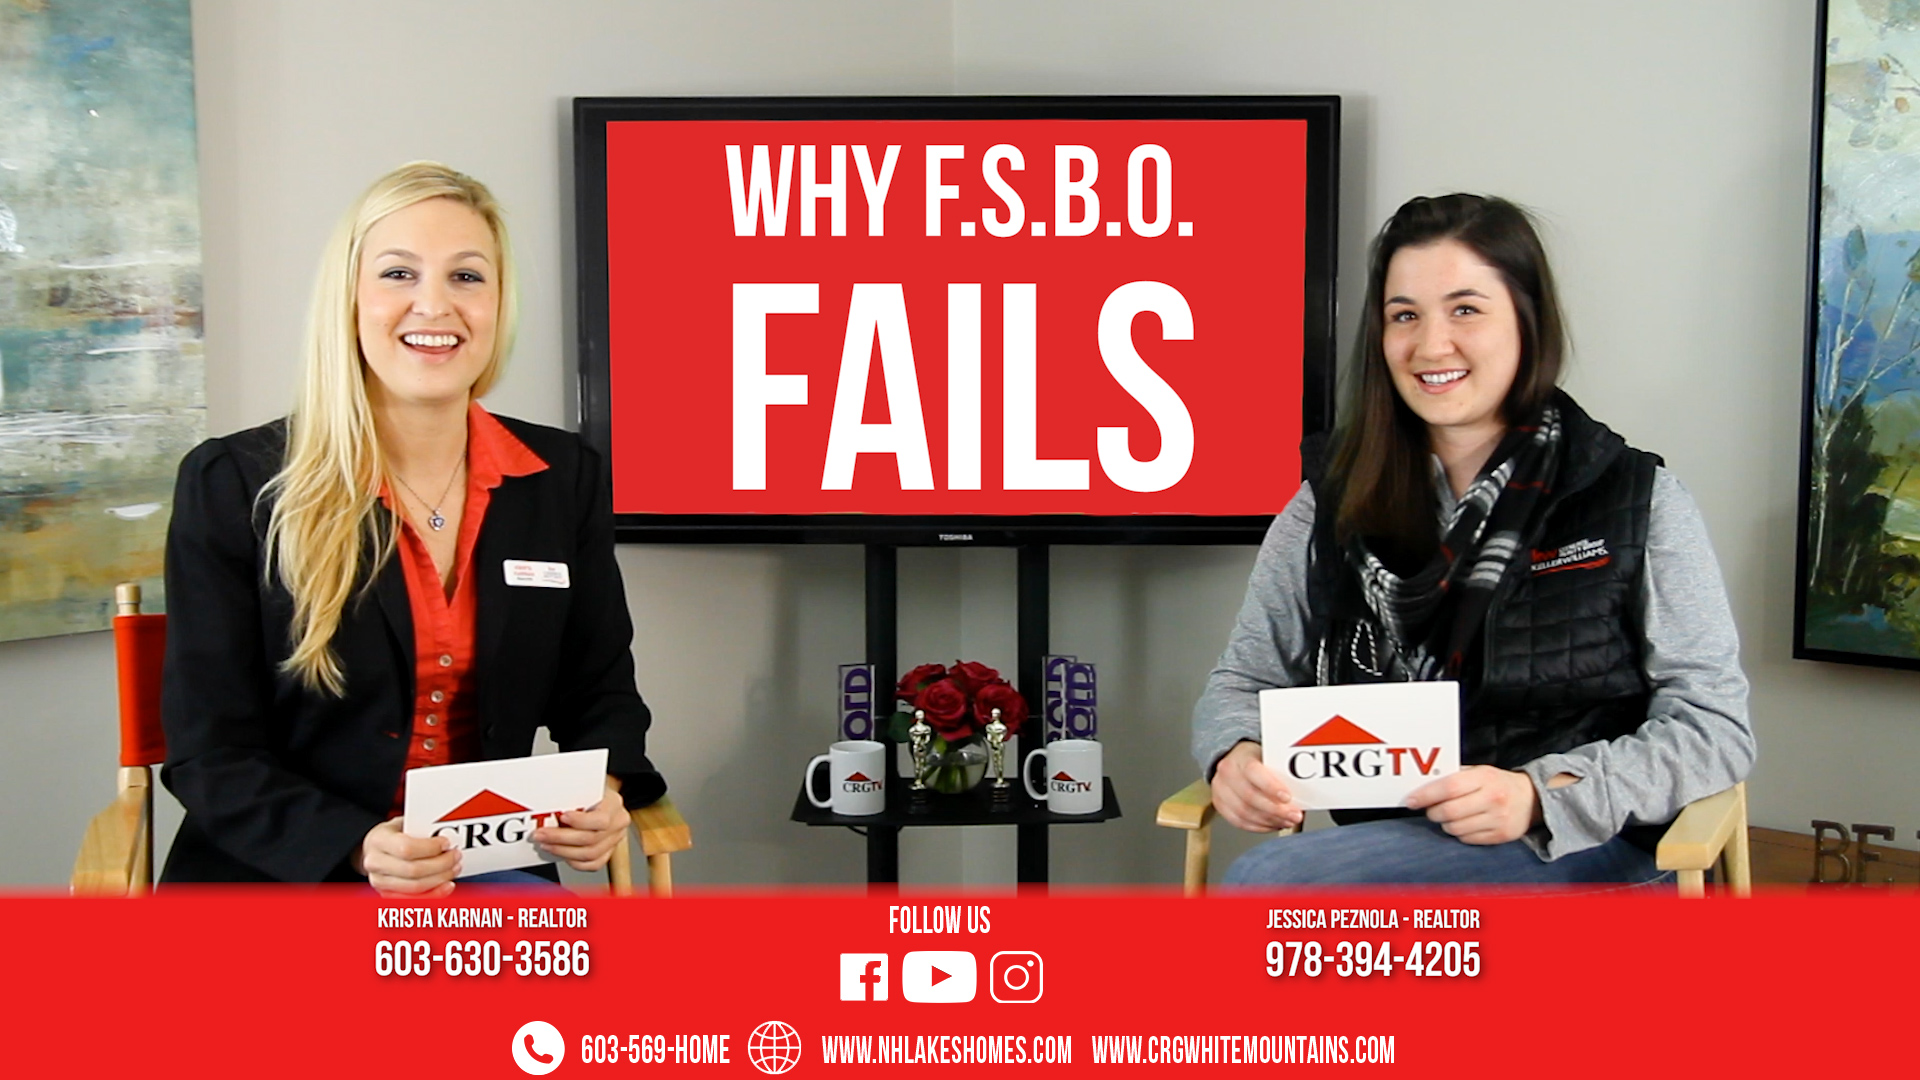 CRGTV: Top 5 Reasons NOT to FSBO featuring Krista & Jess